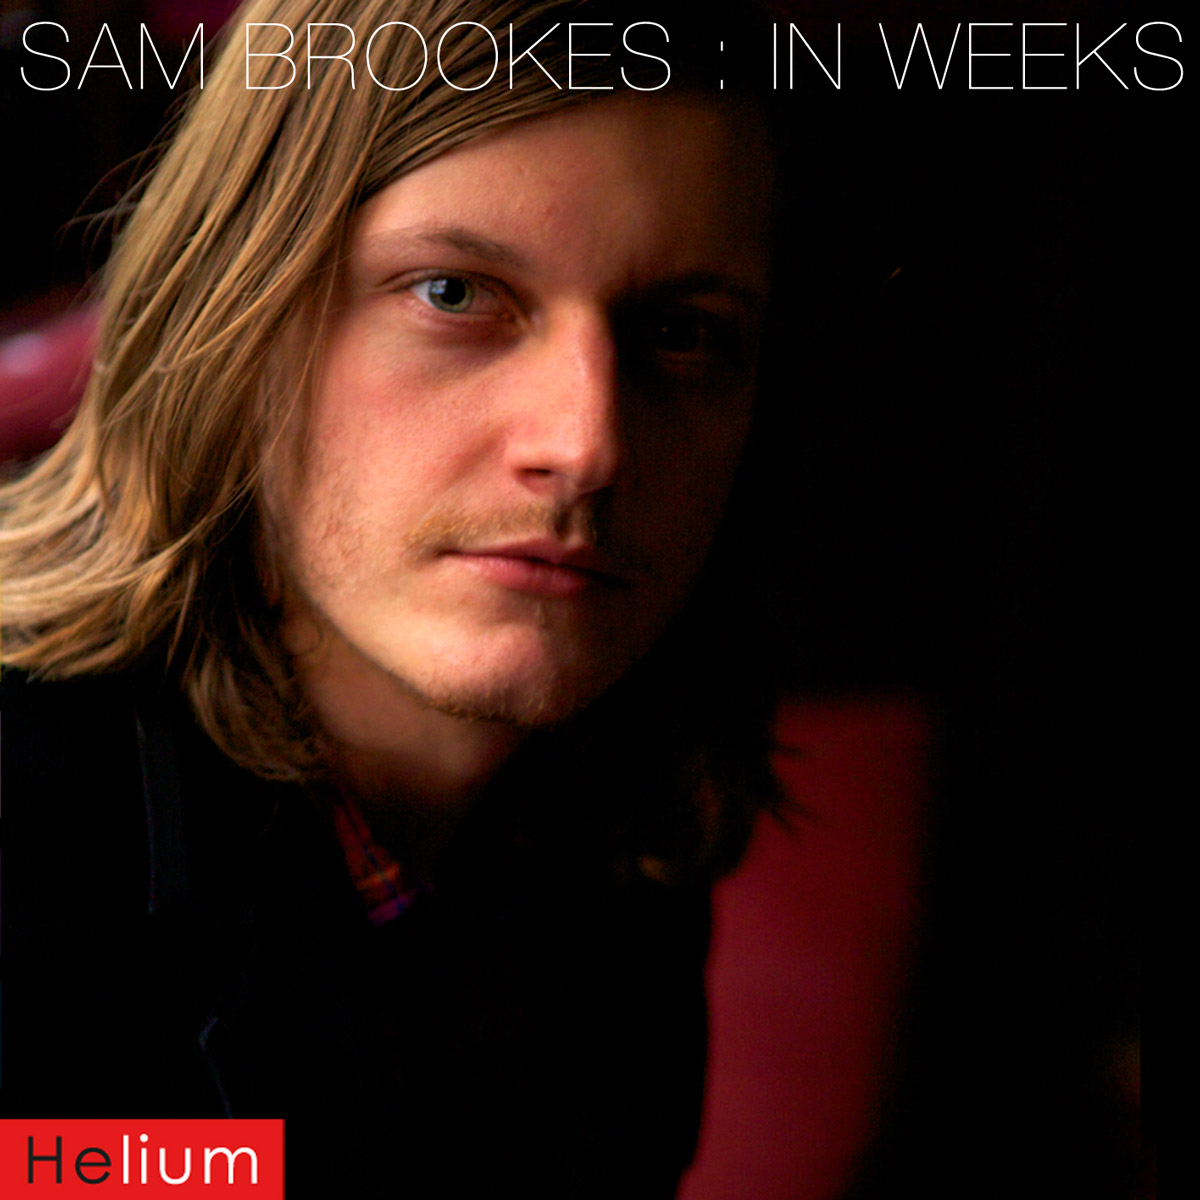 Sam Brookes - In Weeks CD Single